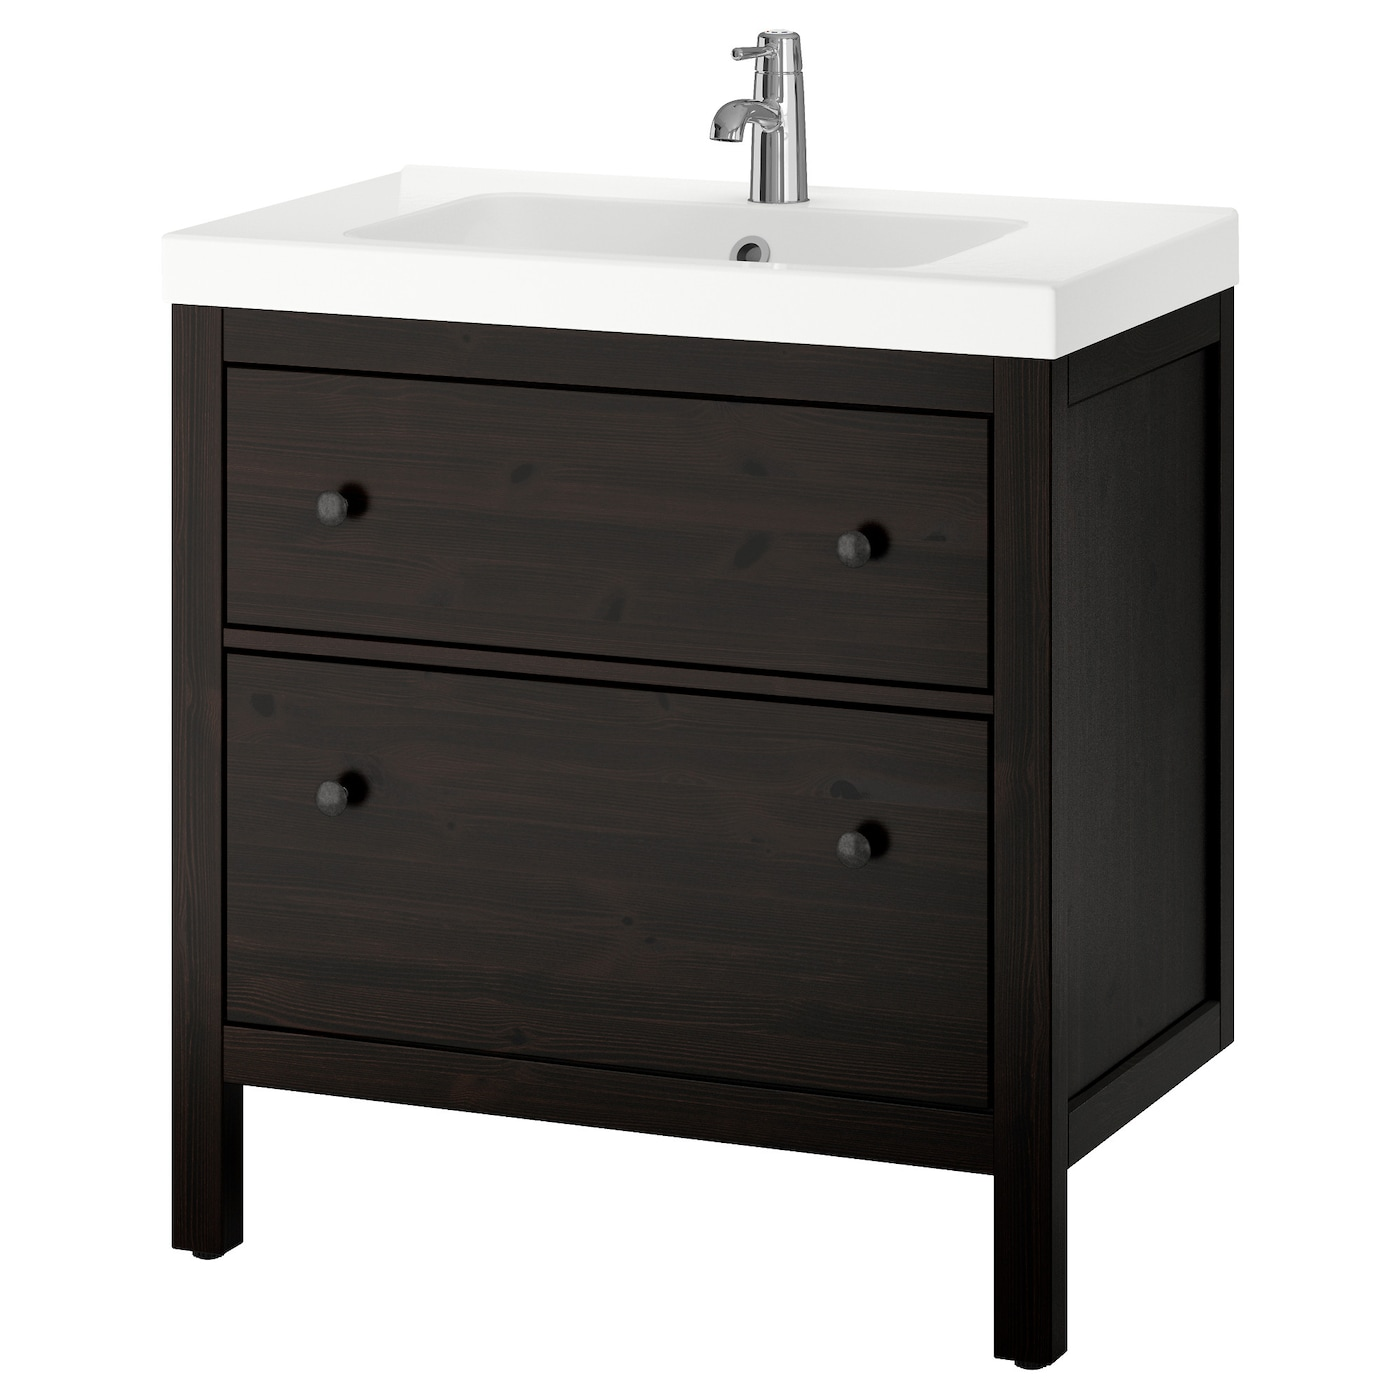 odensvik hemnes wash stand with 2 drawers black brown stain 80x49x89 cm ikea. Black Bedroom Furniture Sets. Home Design Ideas